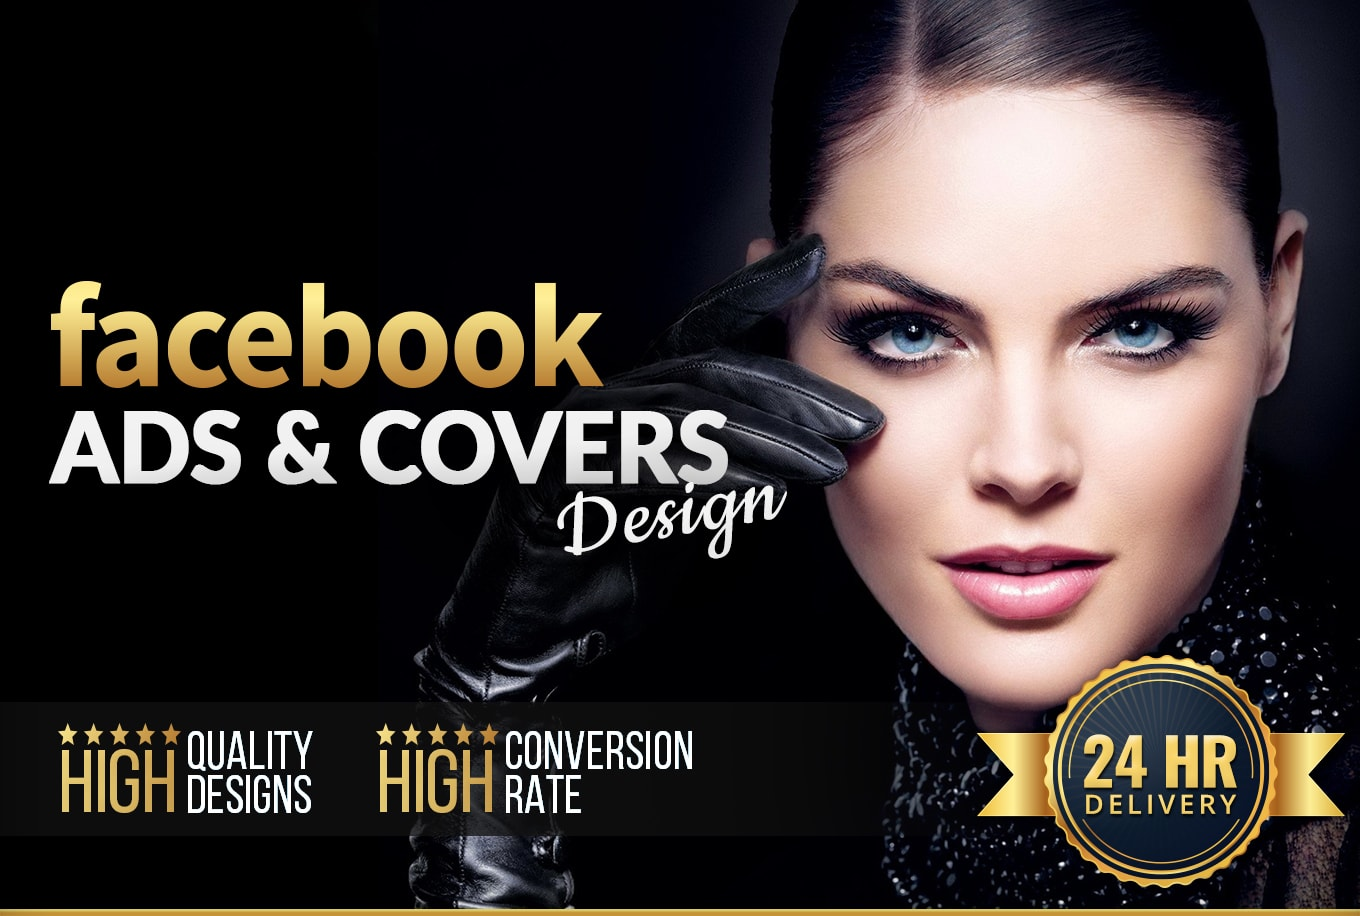 I will design professional and high converting Facebook ads covers